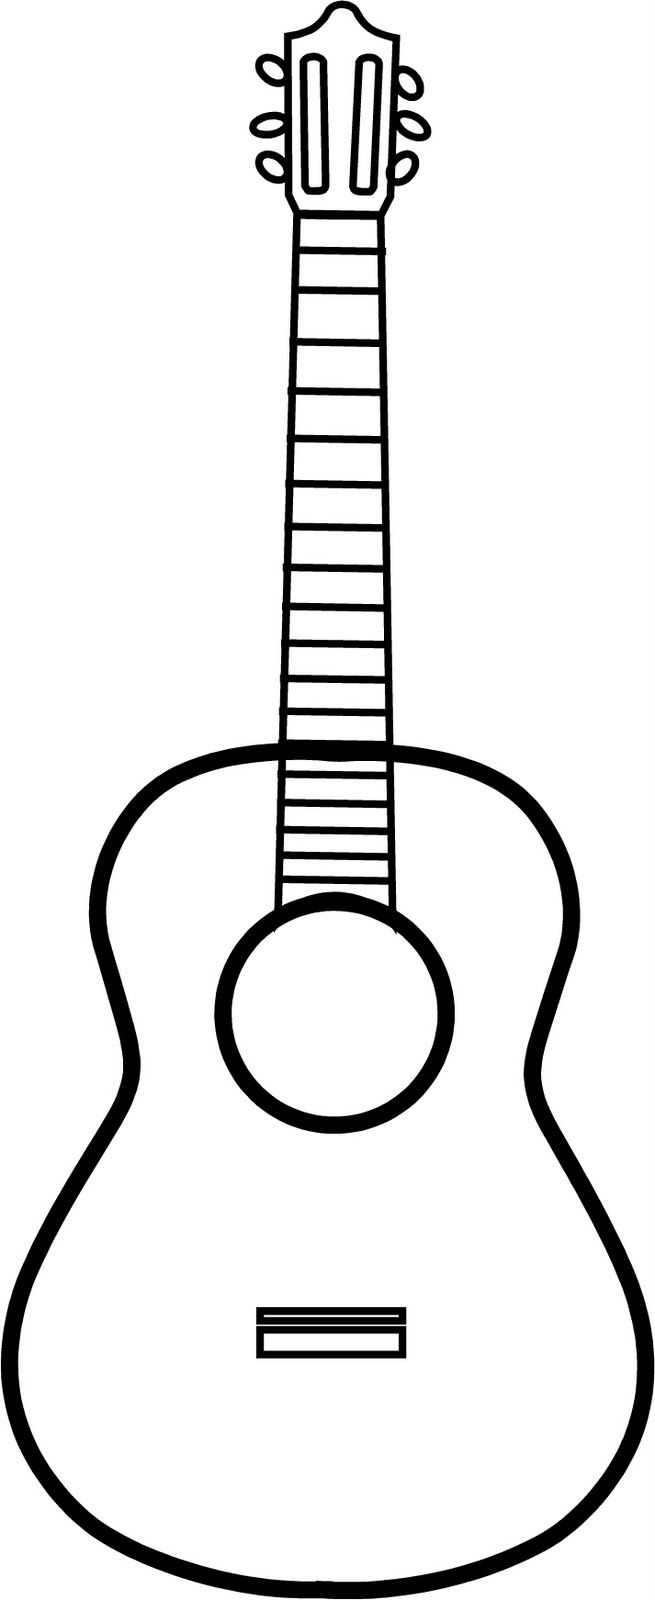 655x1600 Guitar Outline Vinyl On The Go Guitar Imprimibles Blanco